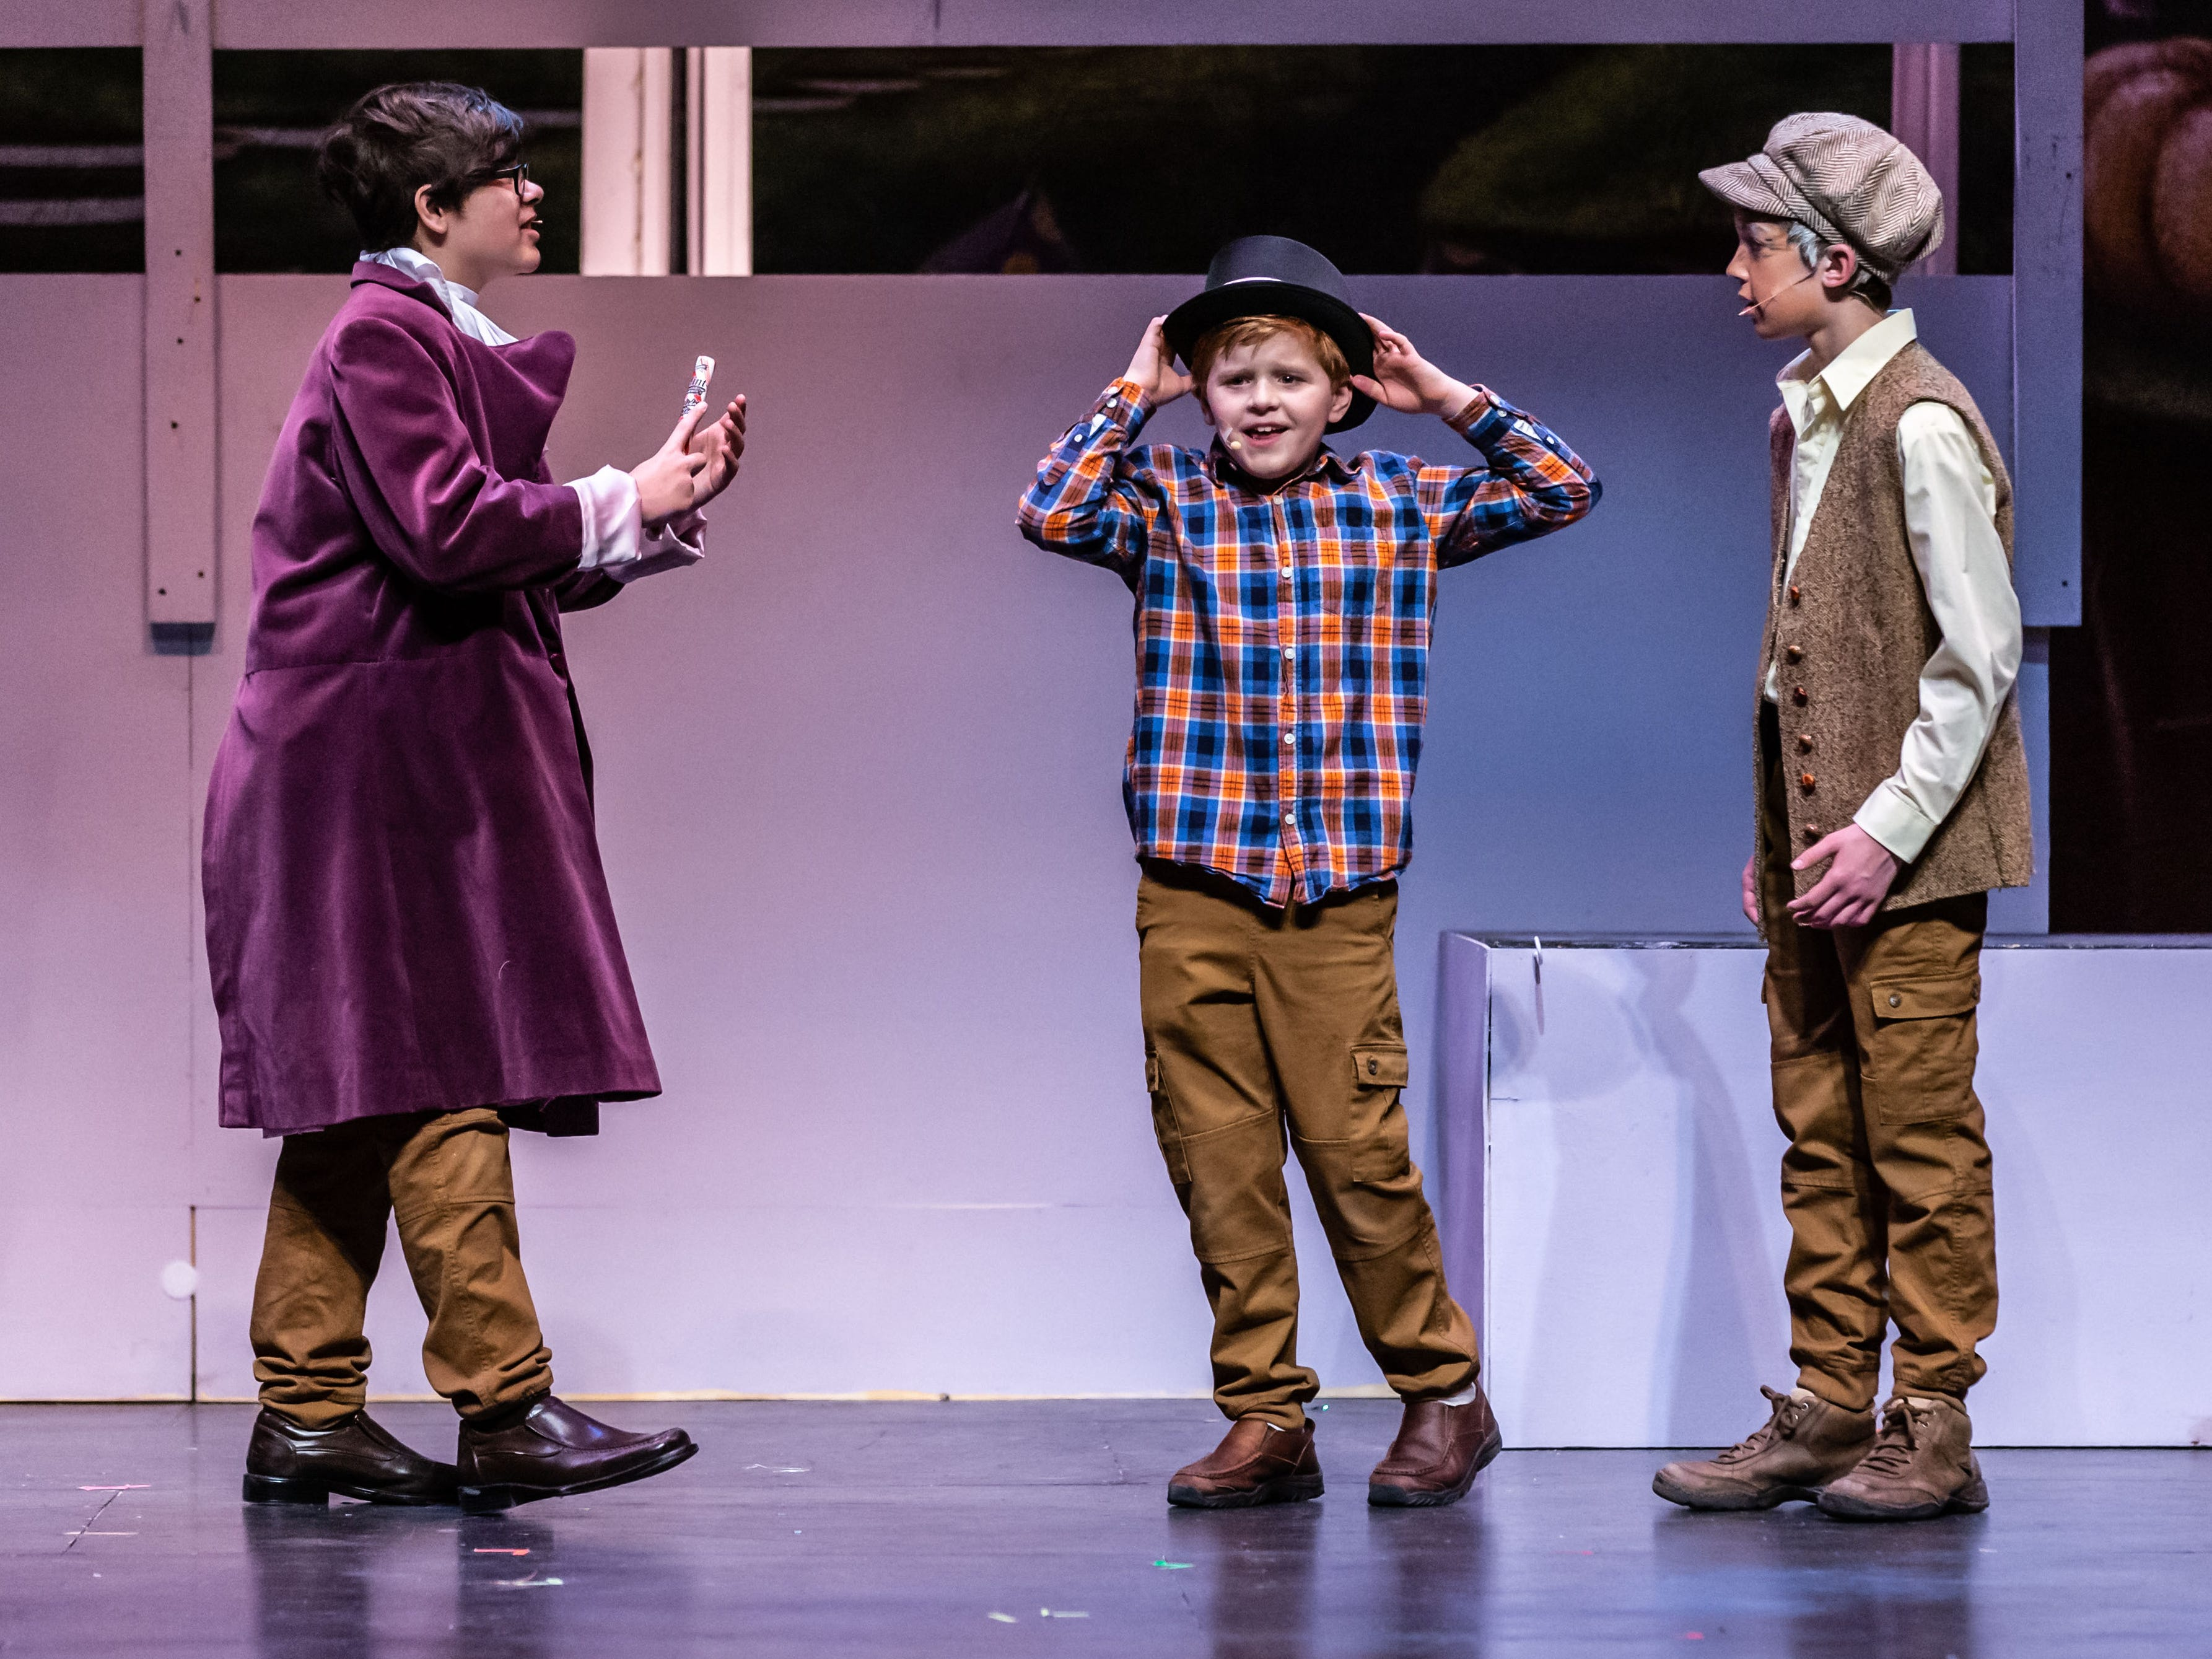 Brookfield Elementary students (from left), Aidan Riddle, Michael Foster and Derek Treis, portray Willy Wonka, Charlie Bucket and Grandpa Joe in a scene from Roald Dahl's Willy Wonka Jr. during rehearsal at the Sharon Lynne Wilson Center for the Arts in Brookfield on Saturday, March 2, 2019. Public performances are at 7 p.m. on March 2 and 2 p.m. on March 3.